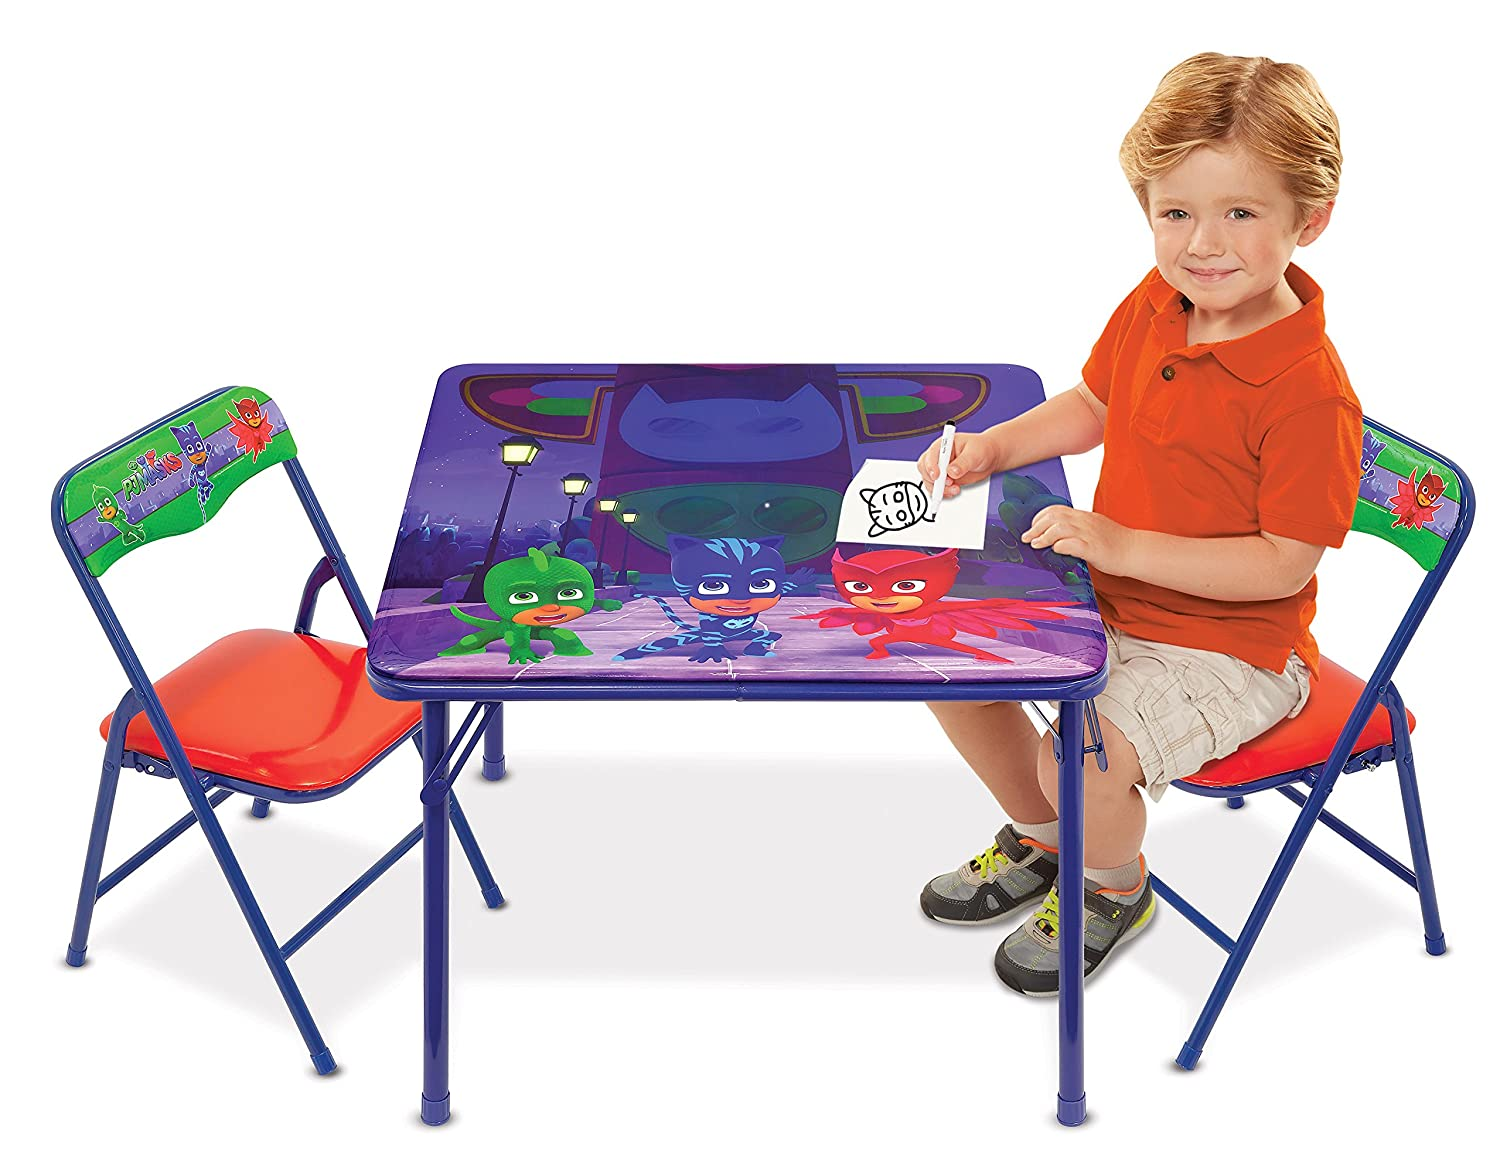 PJ Masks Superhero Team Activity Table Set with 2 Chairs Play Set with Two Chairs Moose Mountain - Domestic 56917